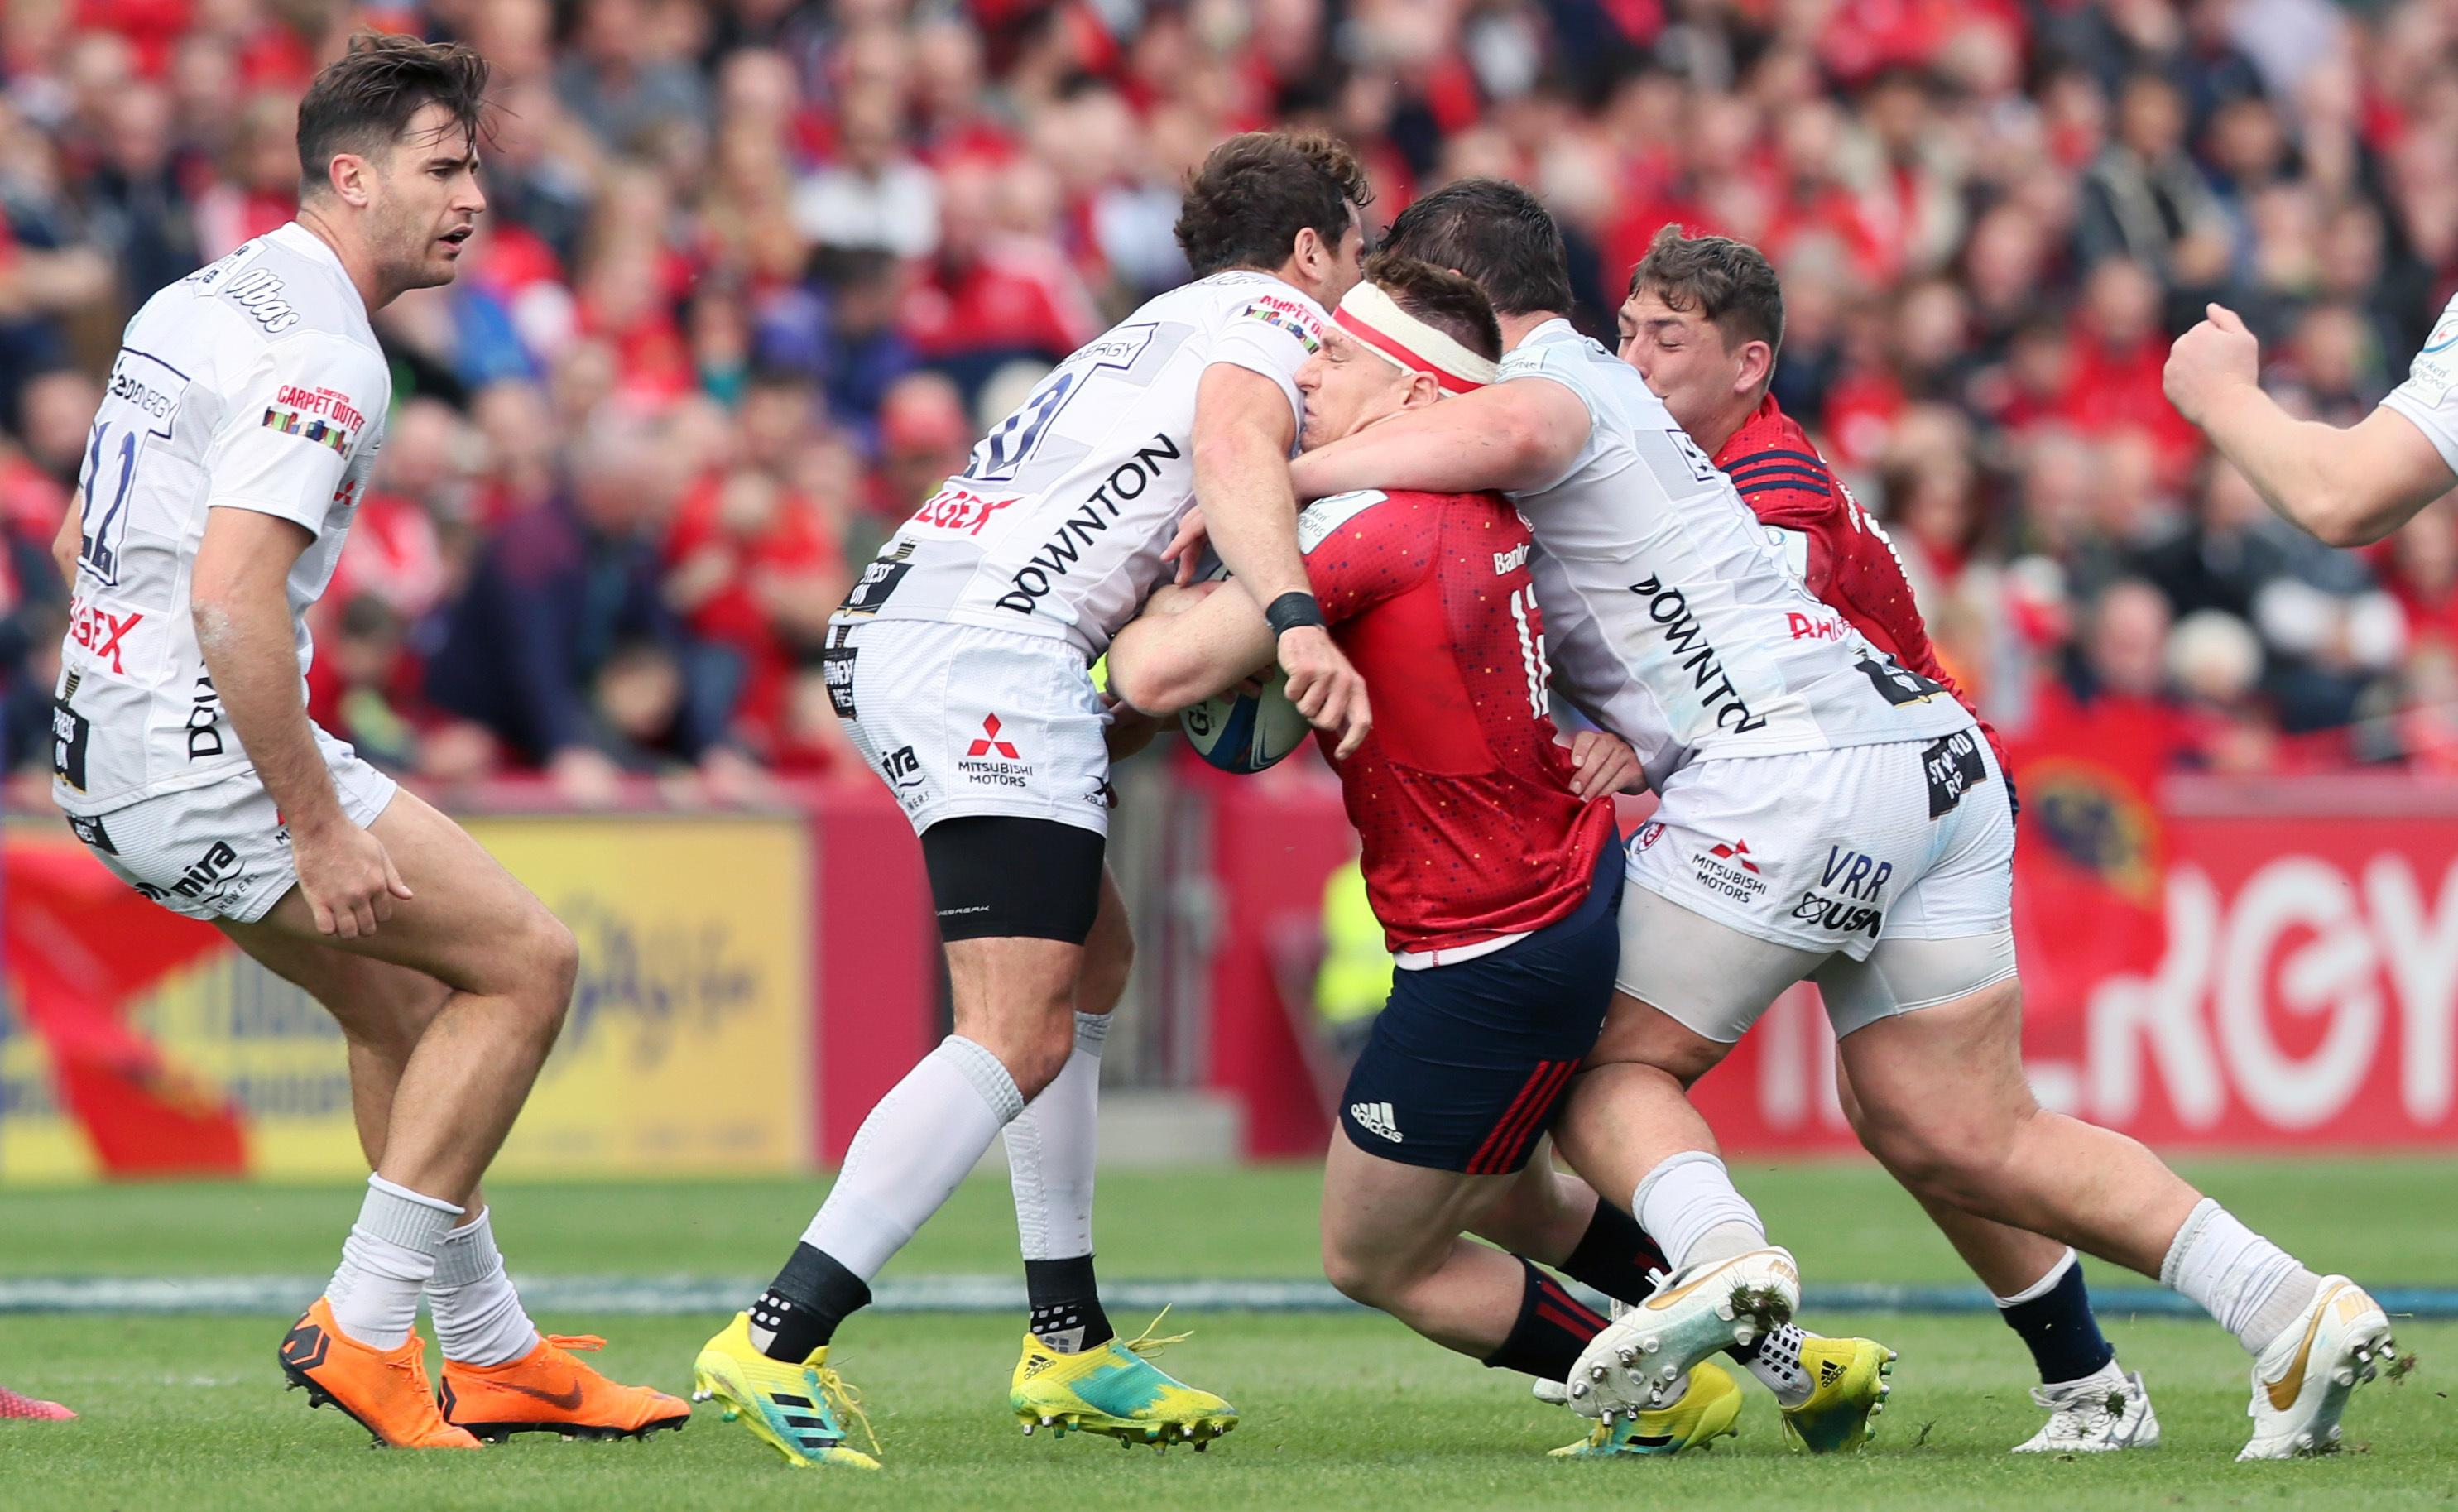 Danny Cipriani's week got a whole lot worse when he was sent off for Gloucester for this